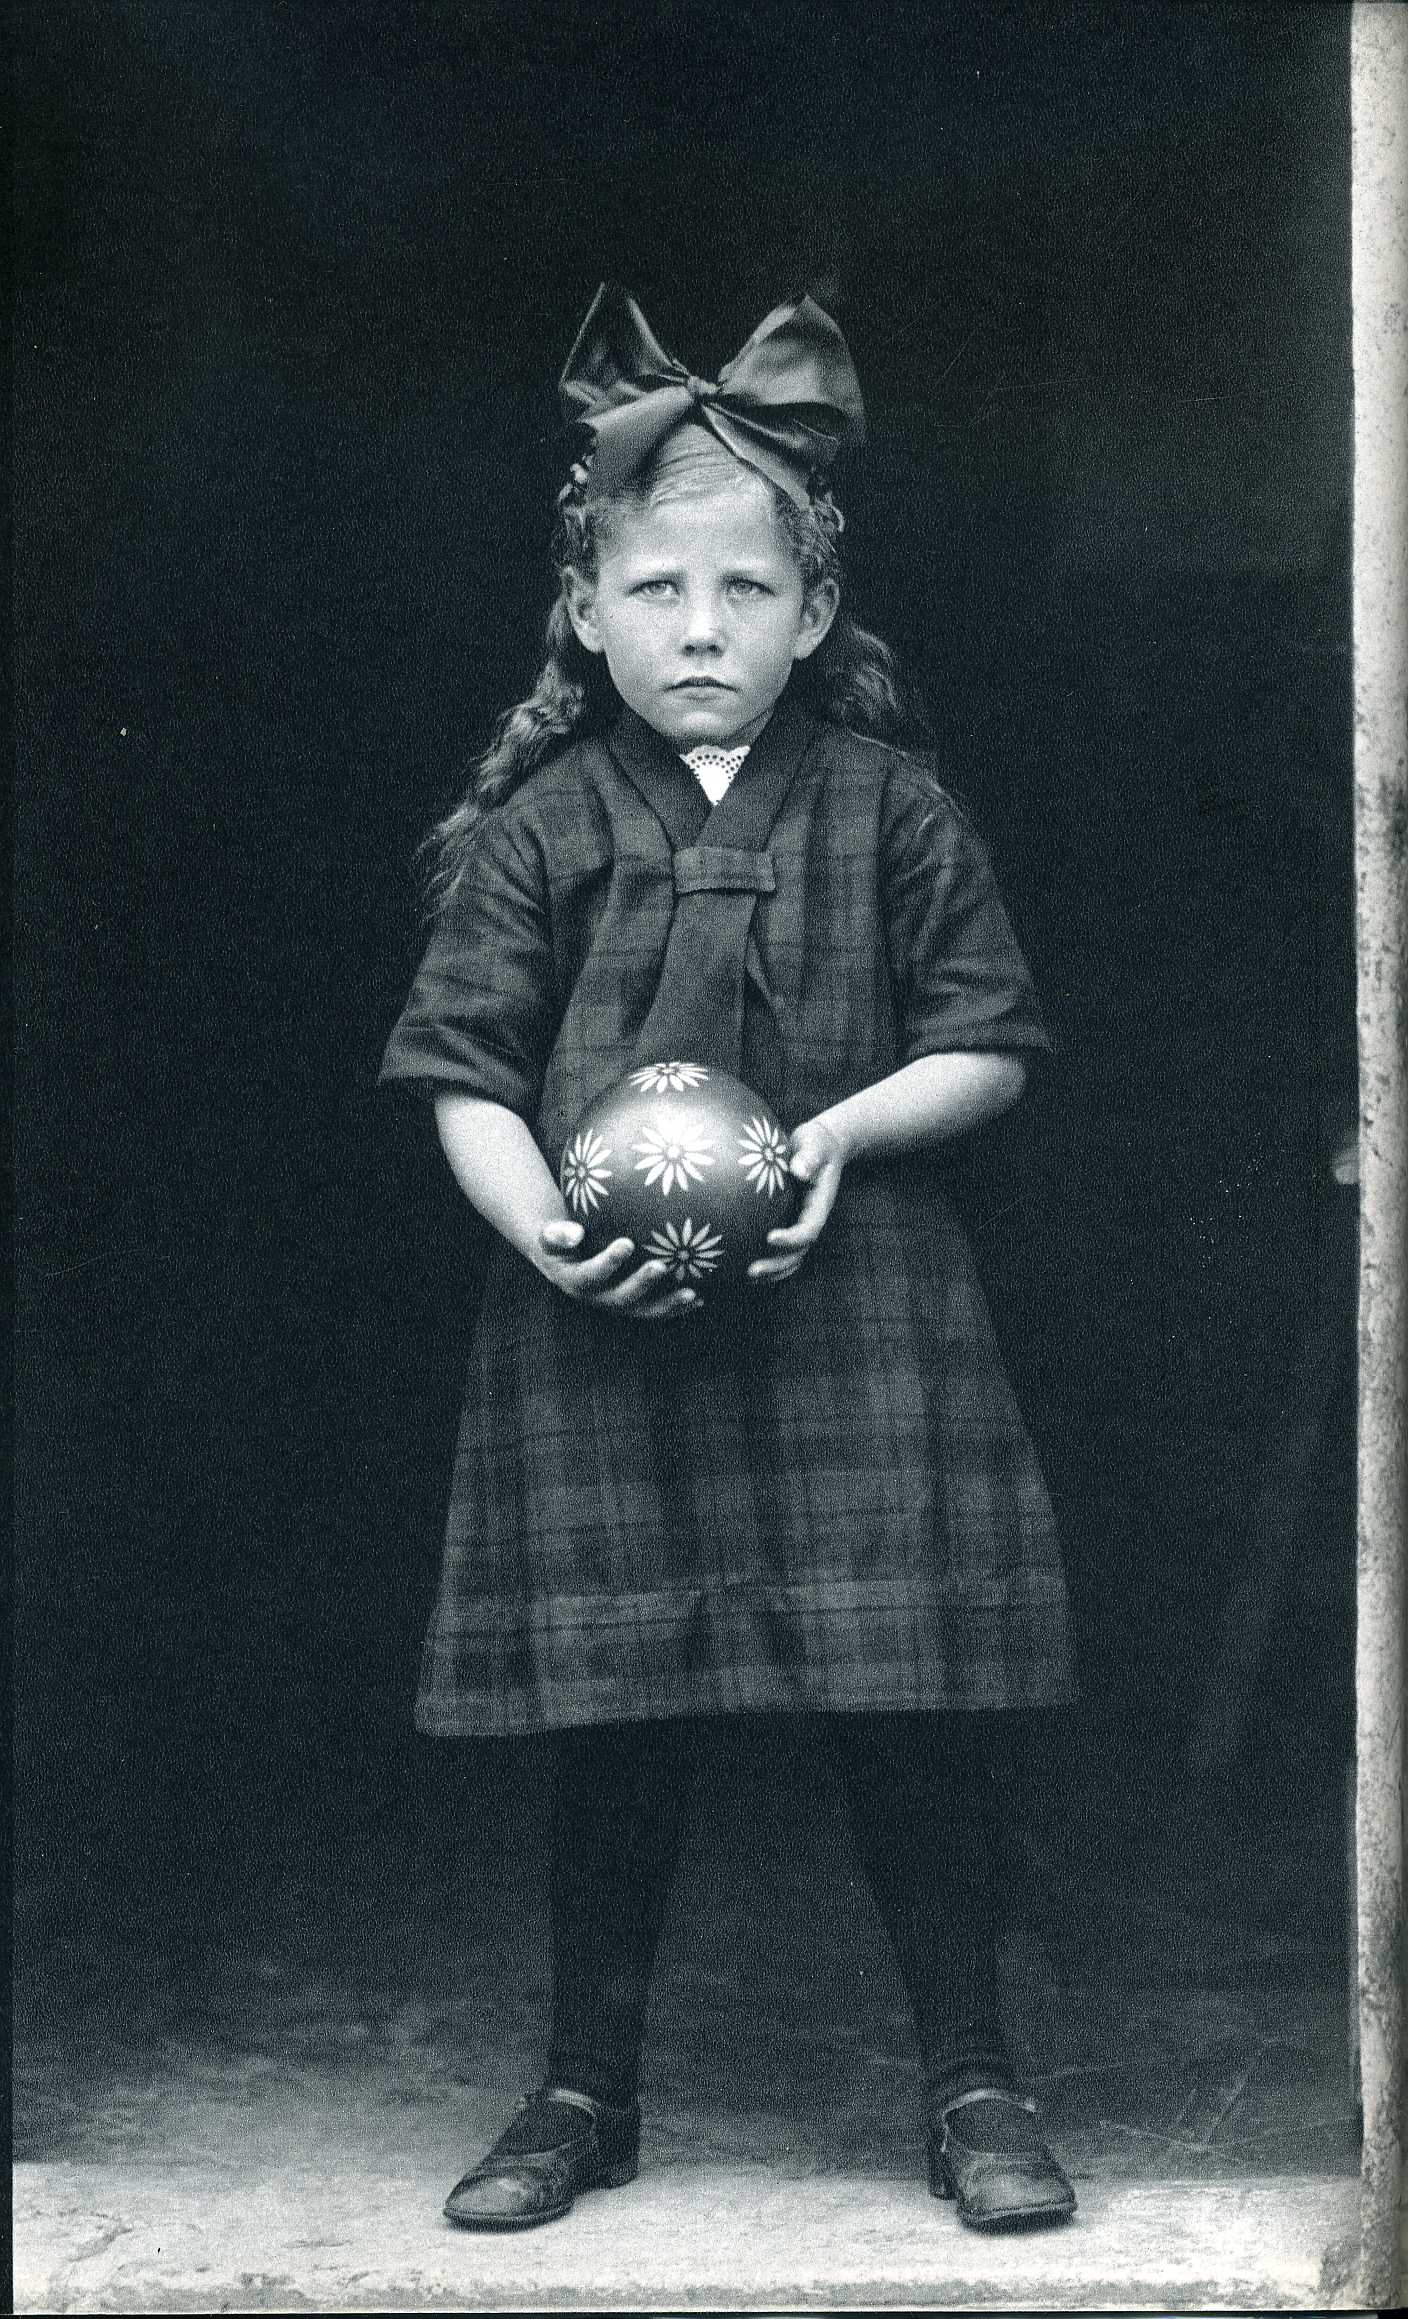 by August Sander